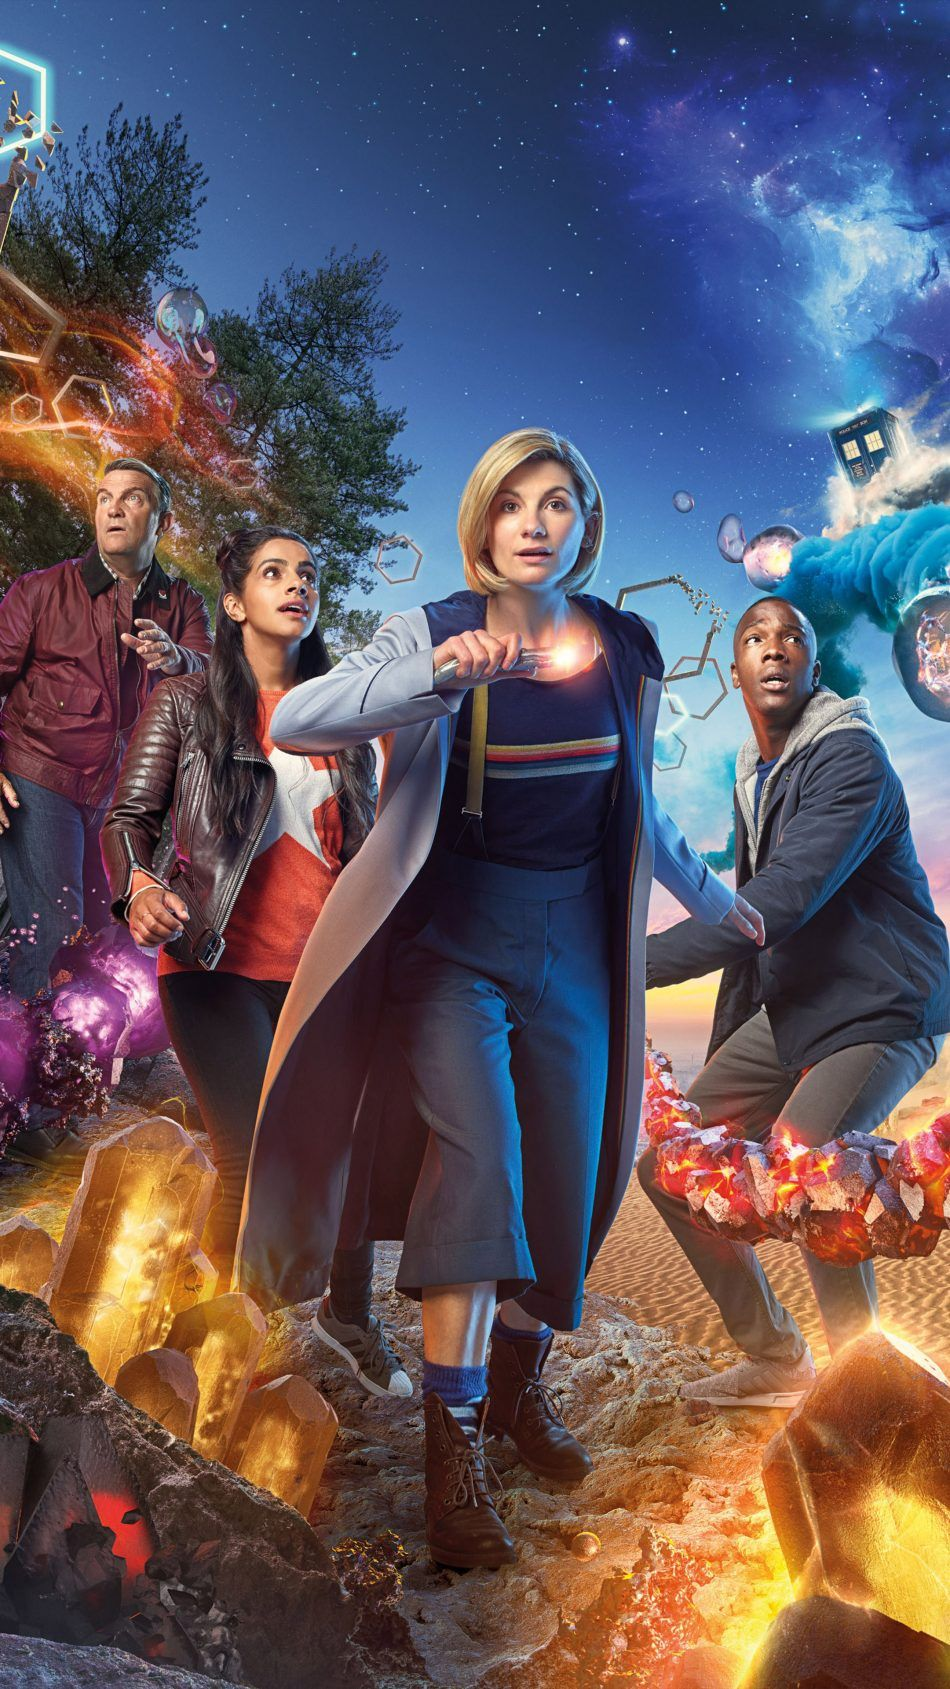 Jodie Whittaker In Doctor Who Season 11 Doctor Who Poster